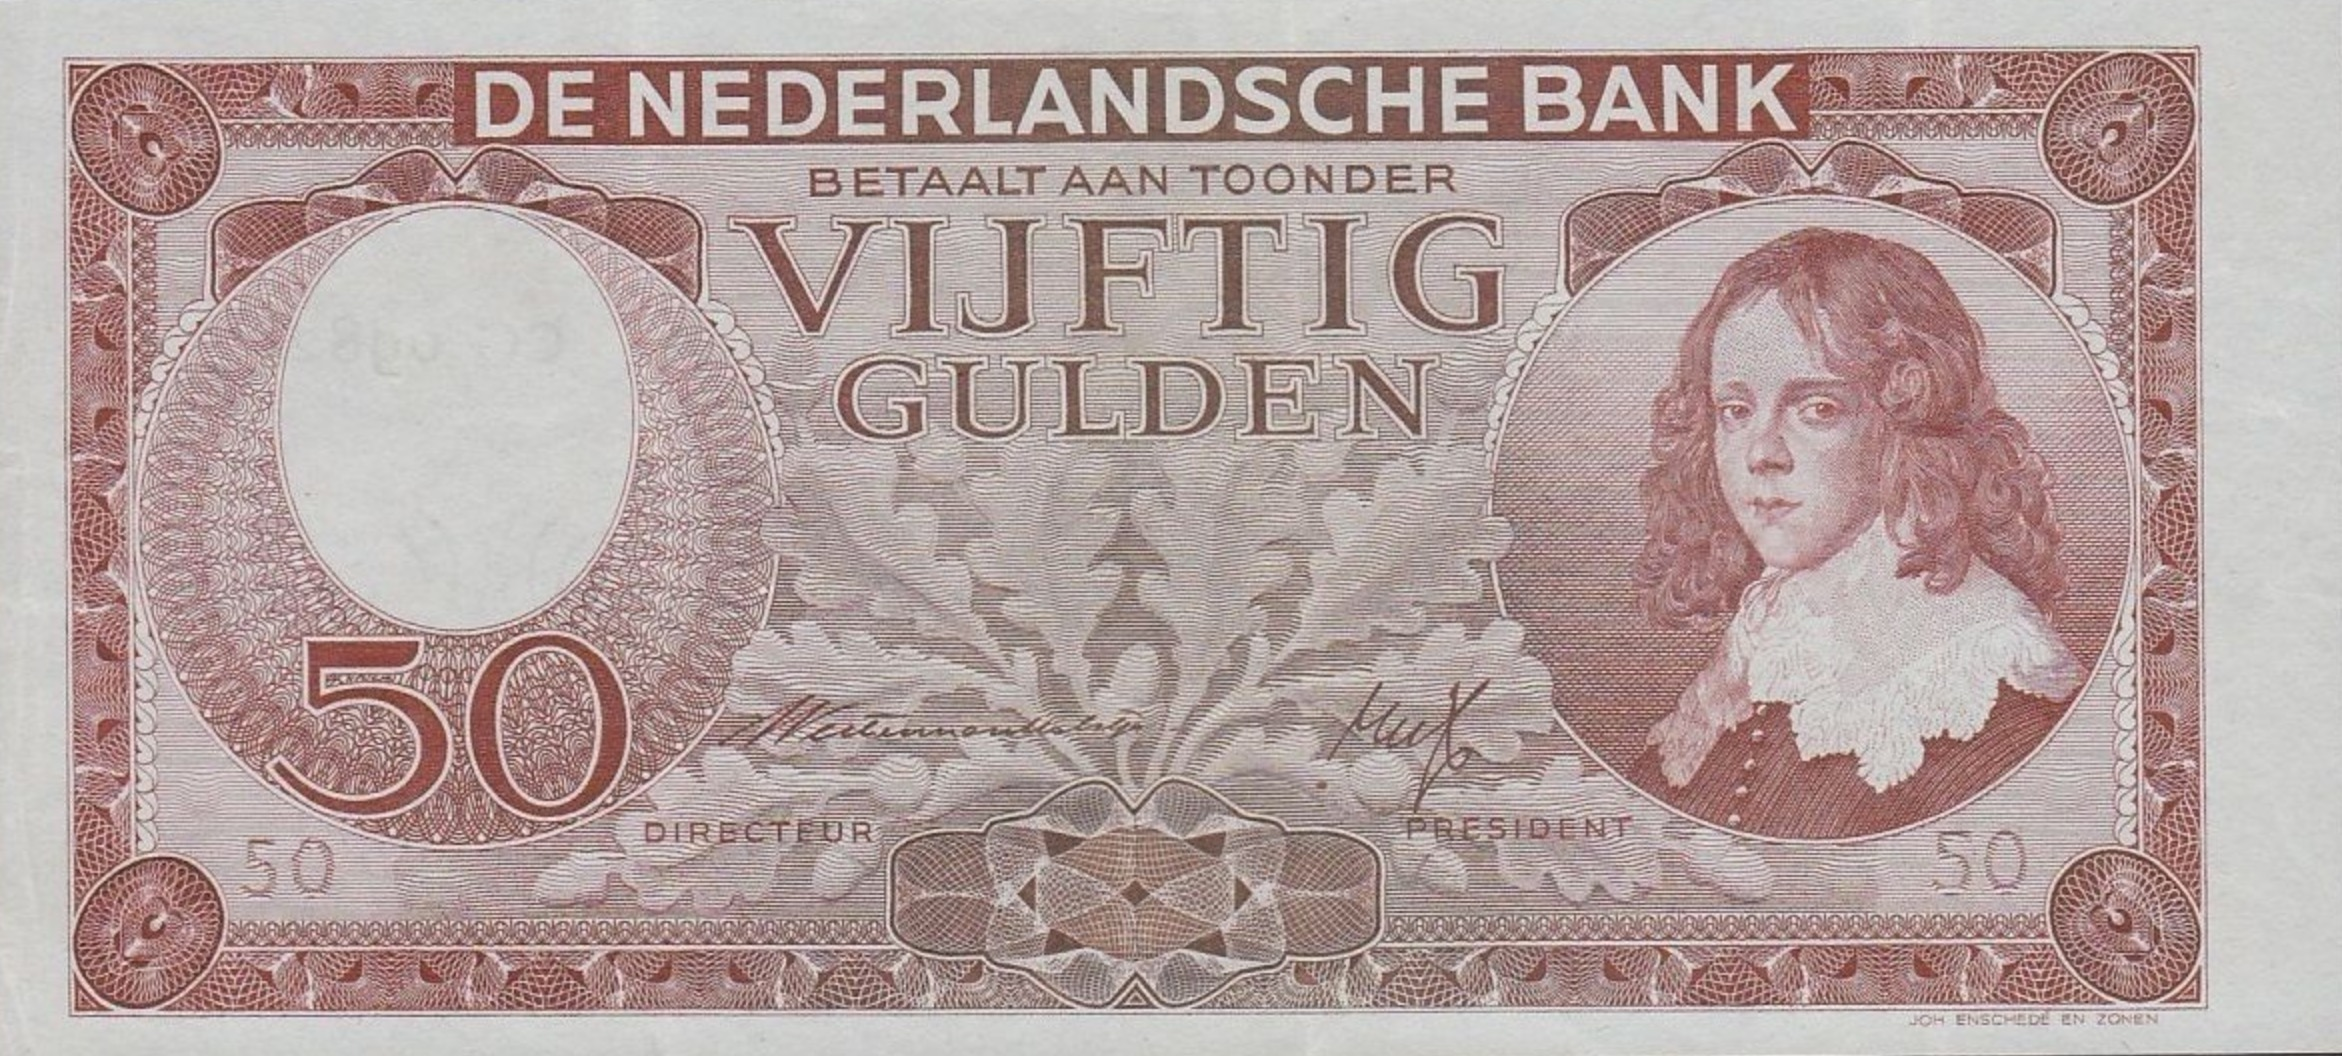 50 Dutch Guilders banknote (Willem III)